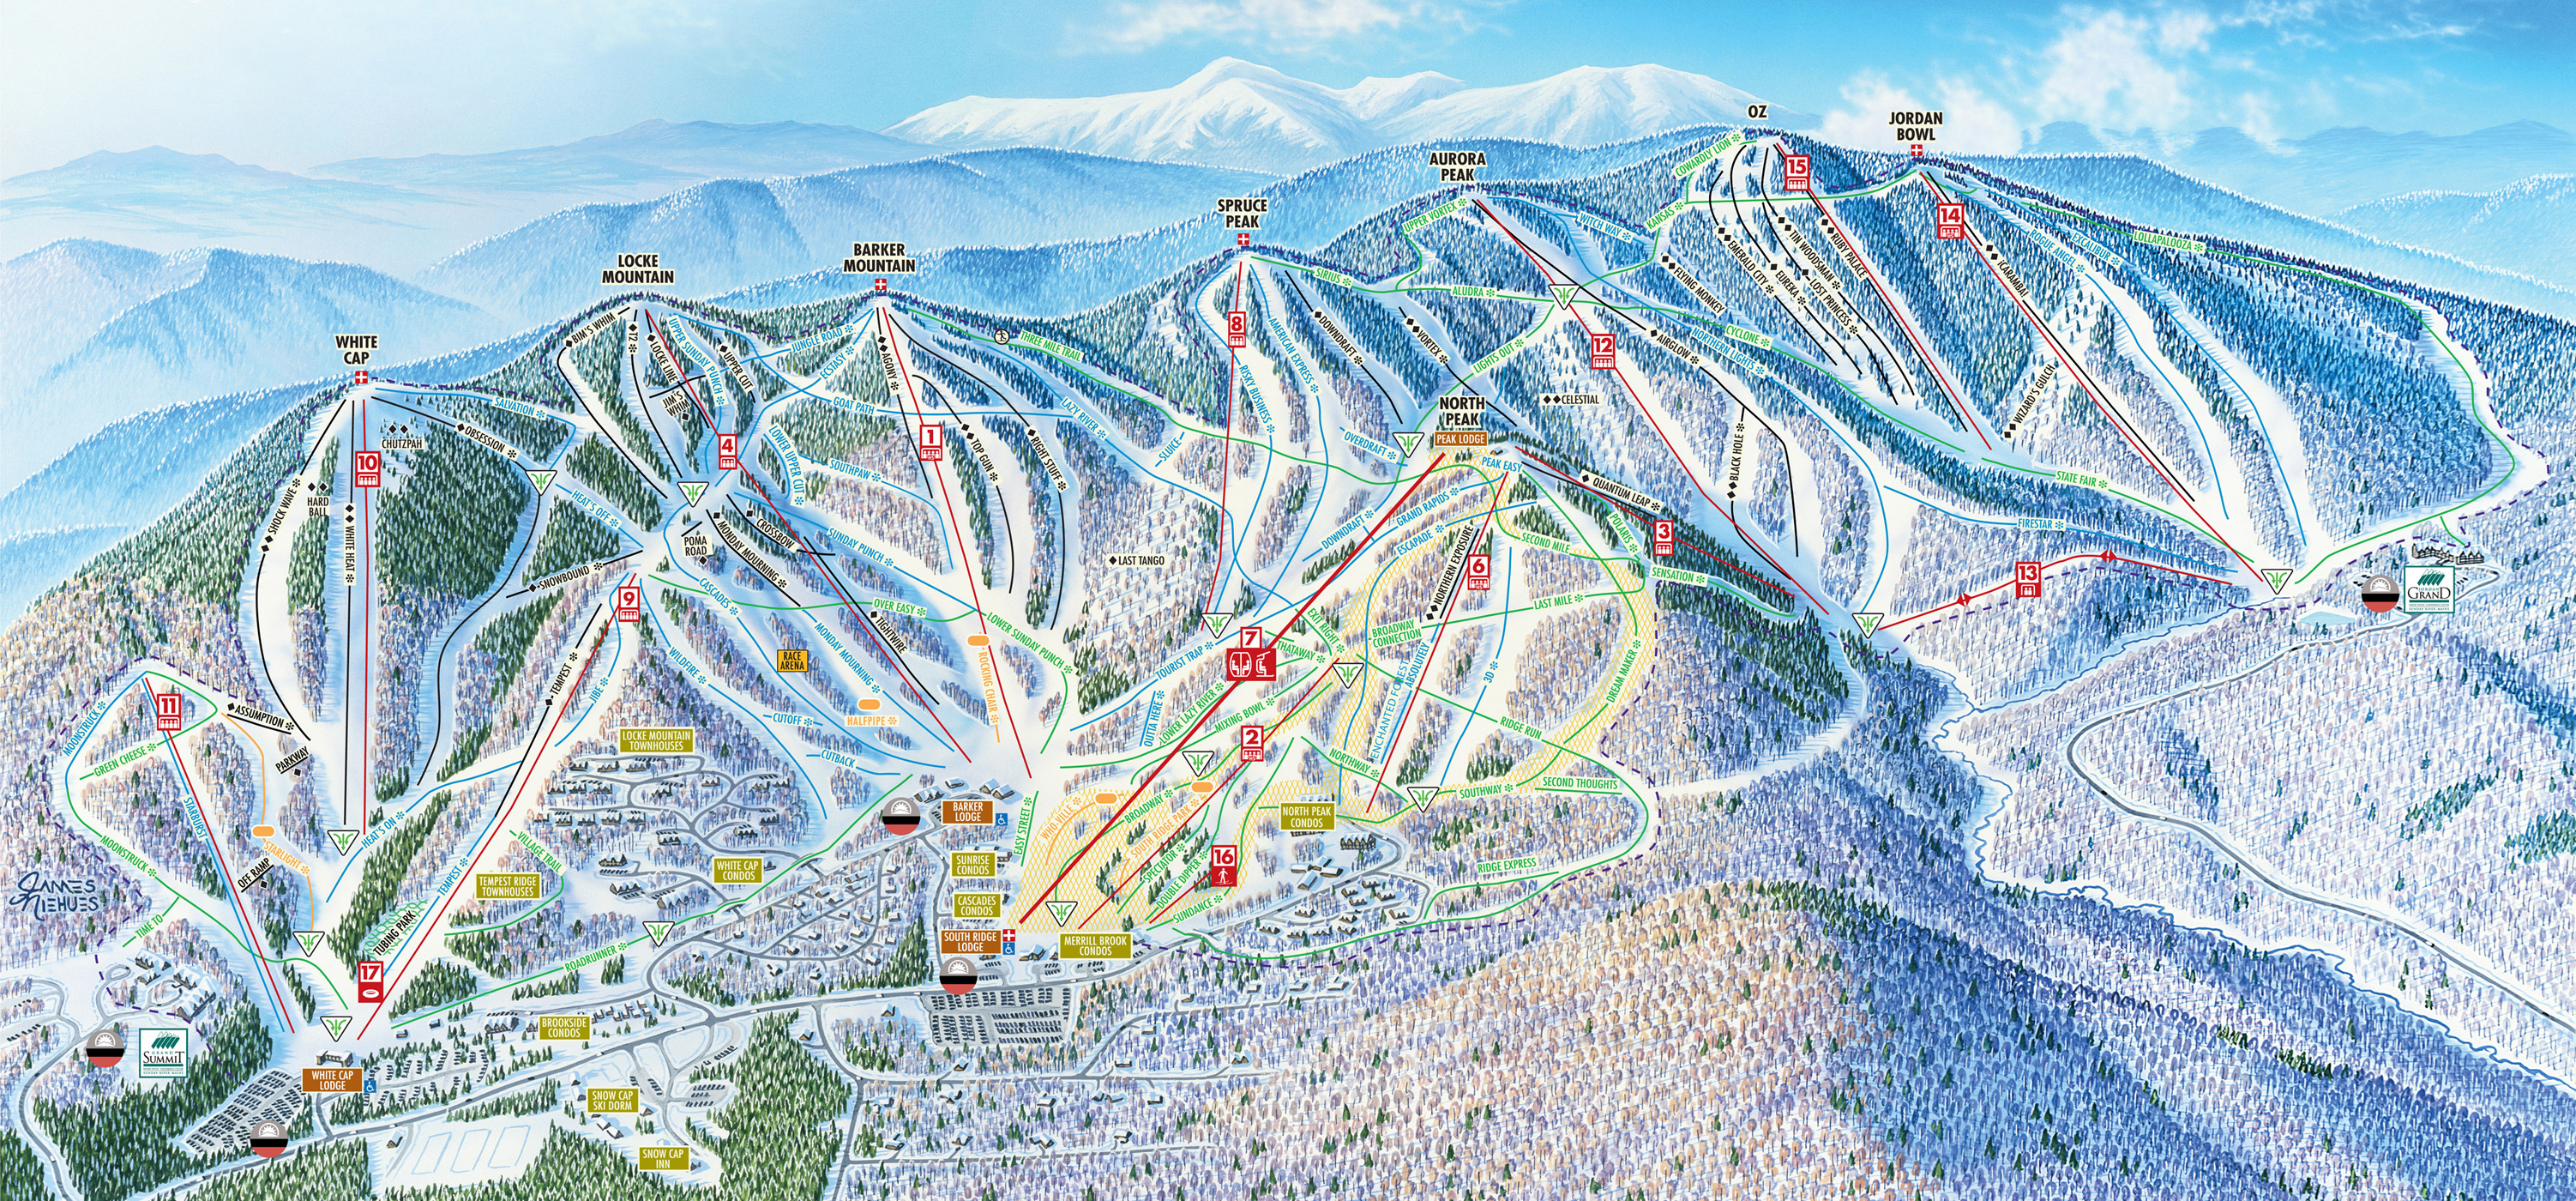 Sunday River Ski Resort - SkiMap.org on golf usa map, the maldives map, time usa map, mountain usa map, fun usa map, moss usa map, maps map, school usa map, basketball usa map, sri lanka map, wale usa map, sports usa map, city usa map, bike usa map, baseball usa map, lake usa map, u.a.e map, football usa map, travel usa map, brazil map,